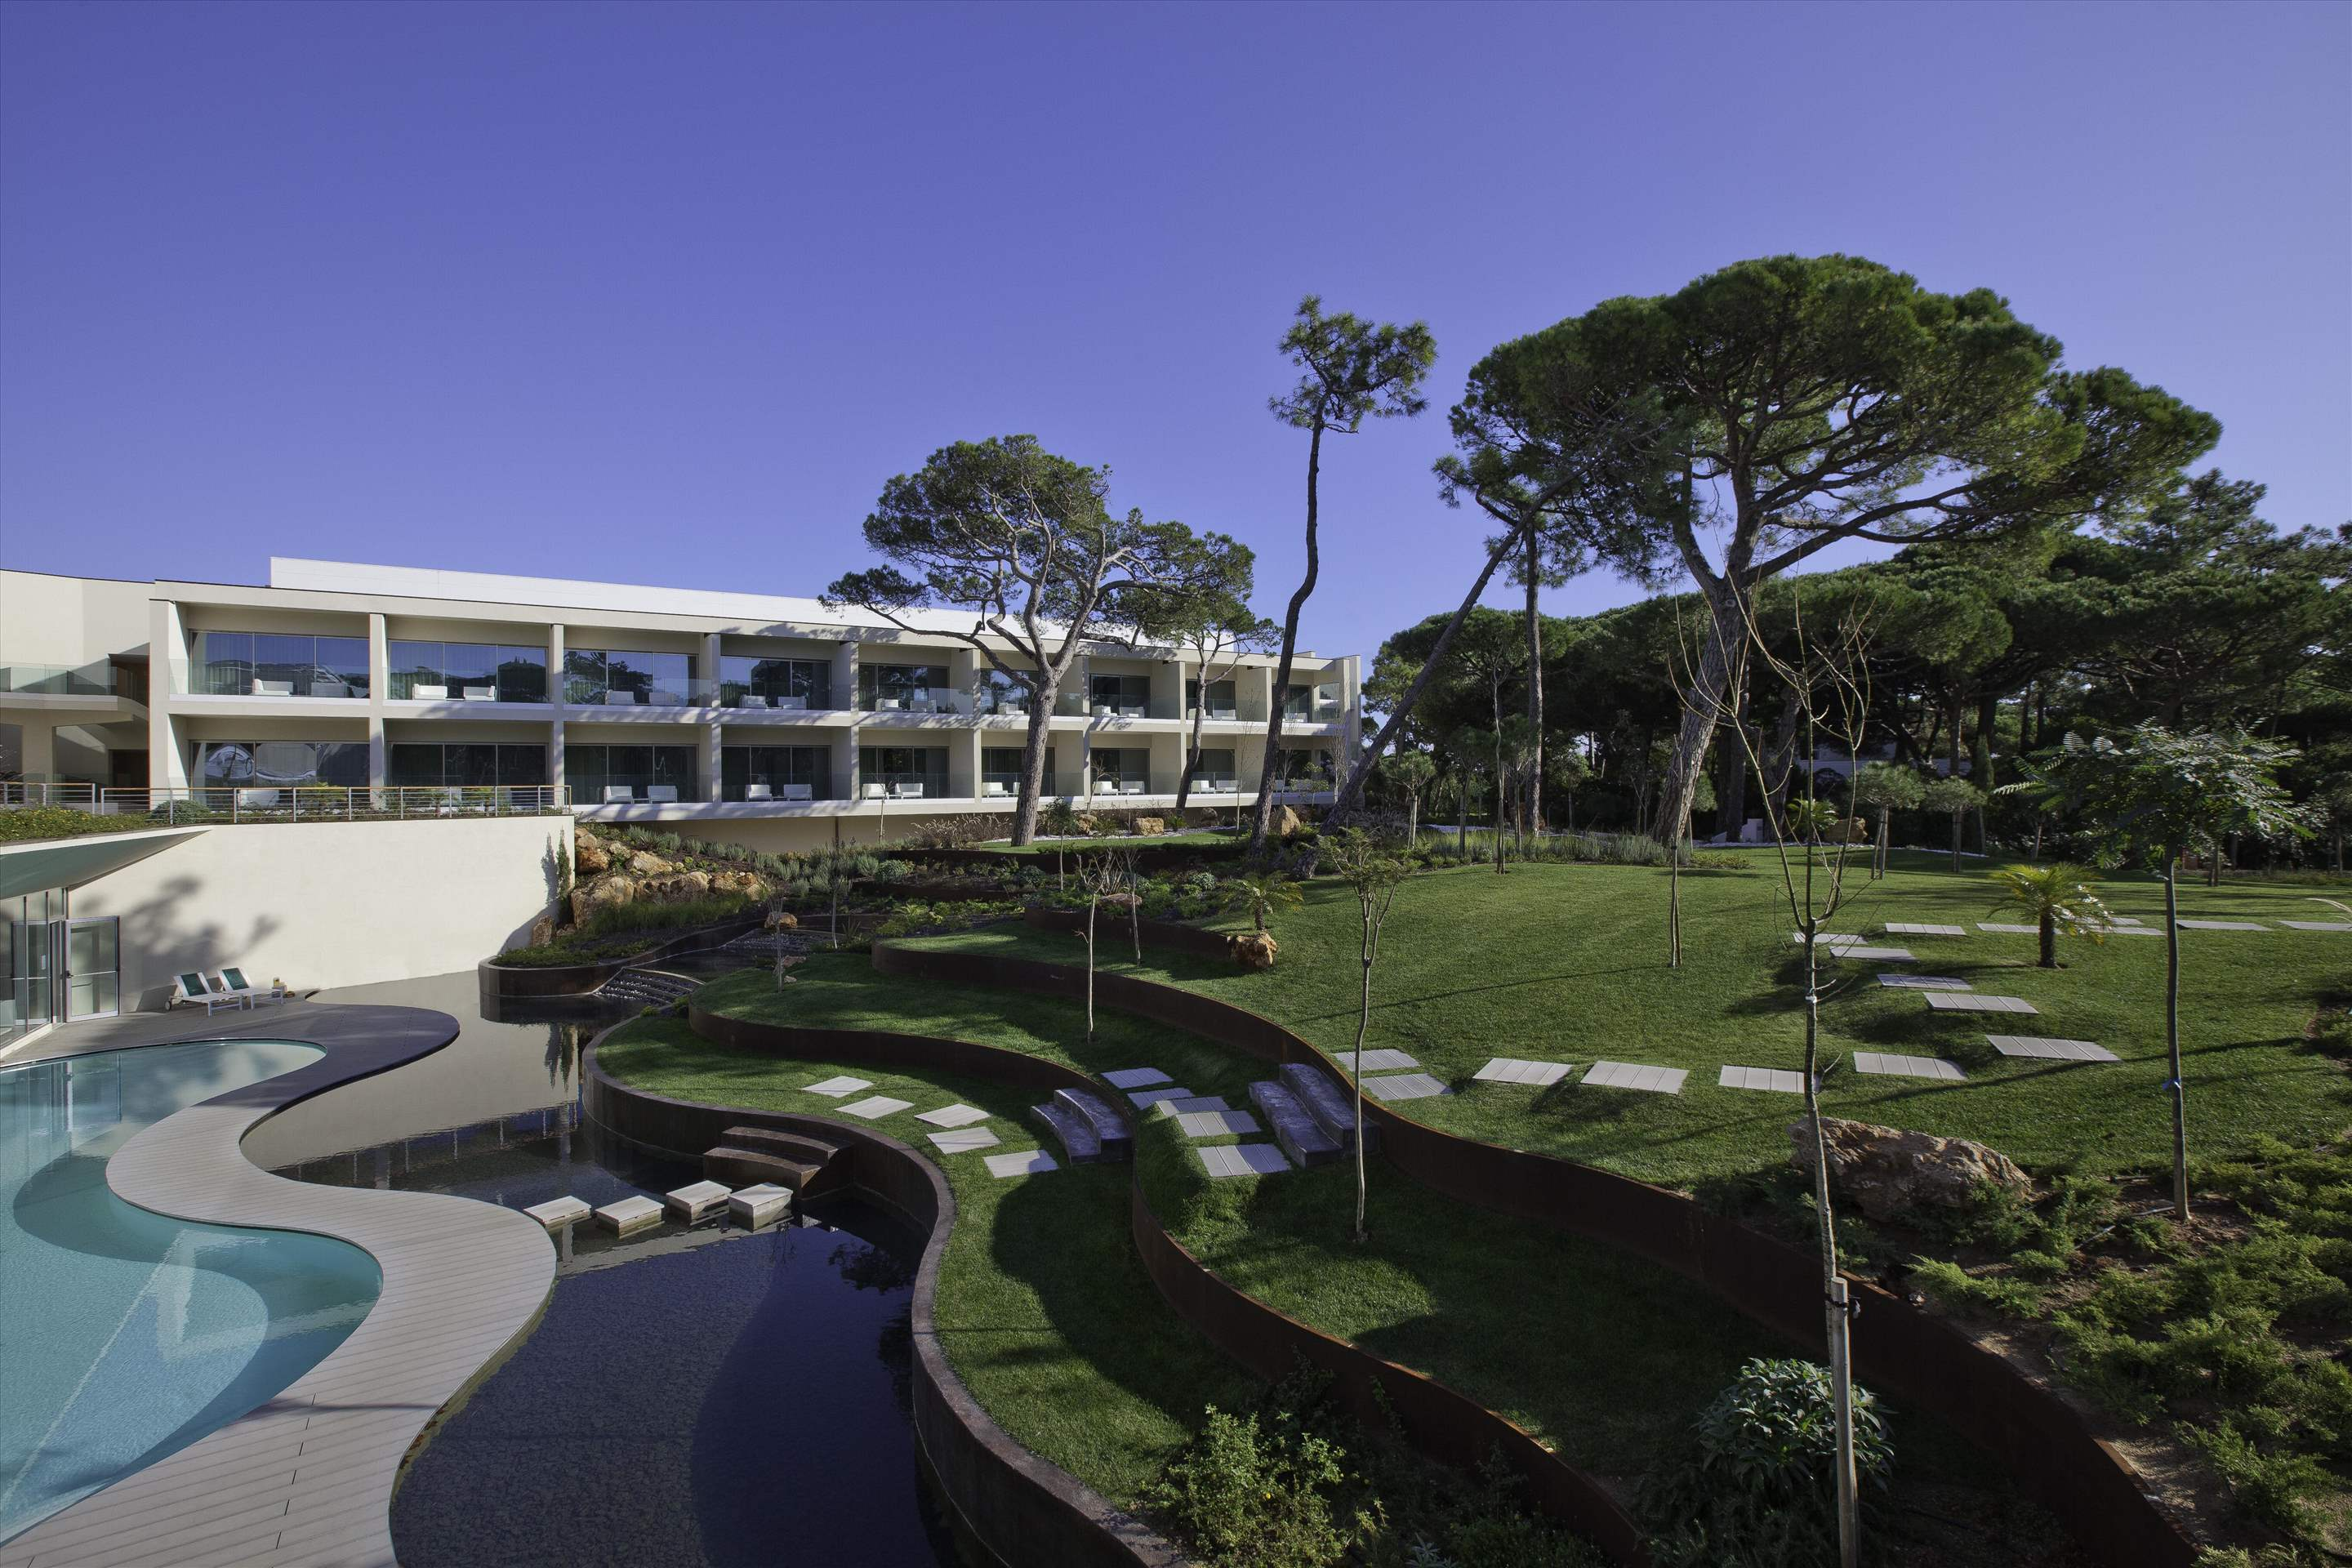 Martinhal Cascais Hotel, Deluxe Suite, BB Basis, 1 bedroom hotel in Lisbon Coast, Lisbon